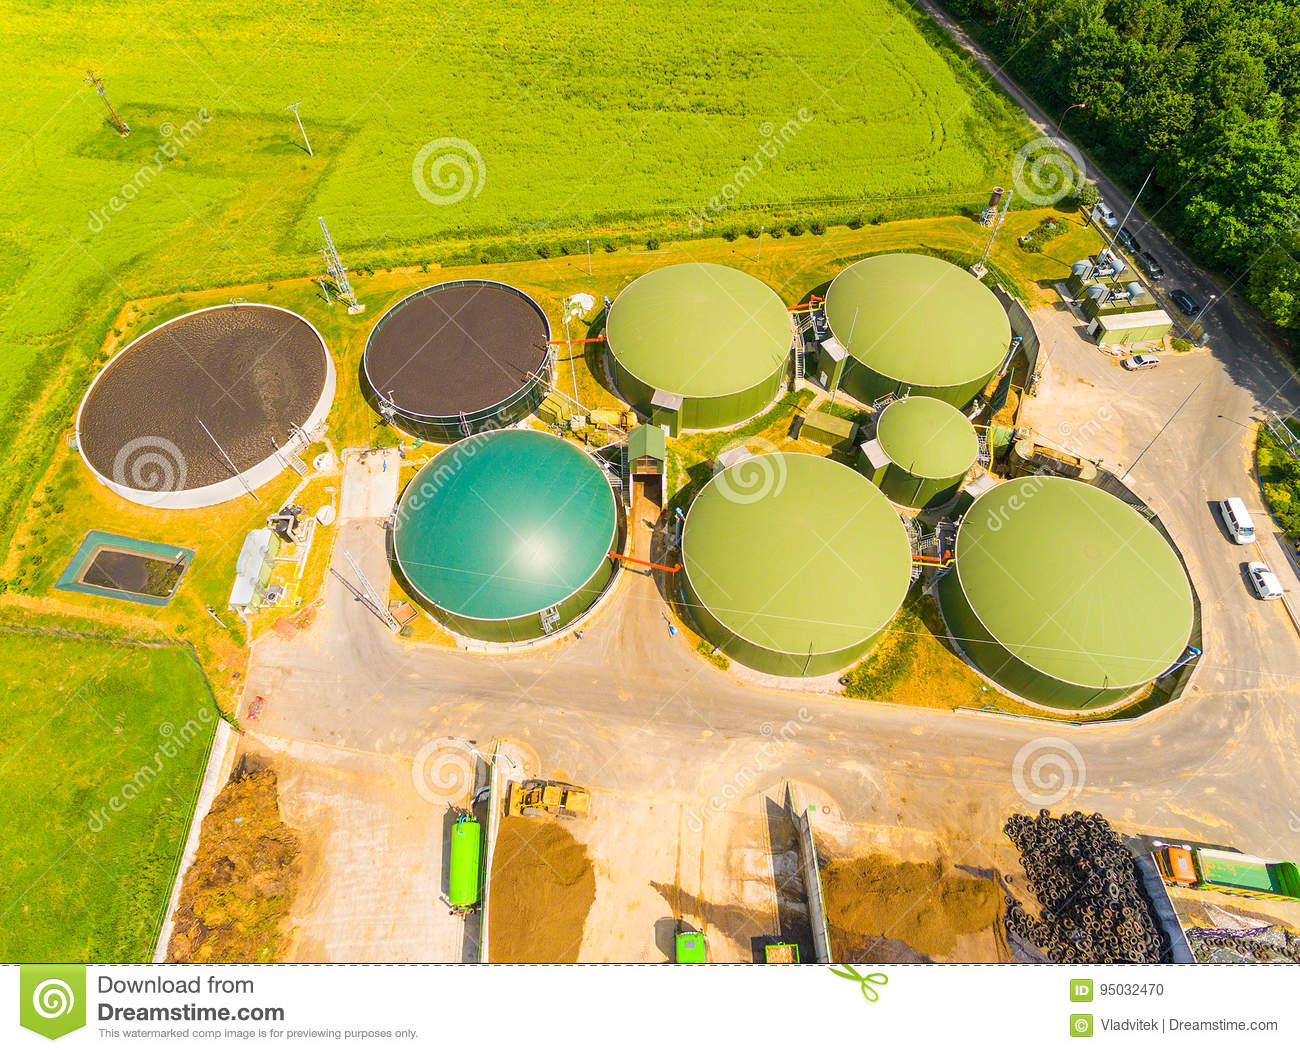 Biogas plant and farm  stock photo  Image of agriculture - 95032470